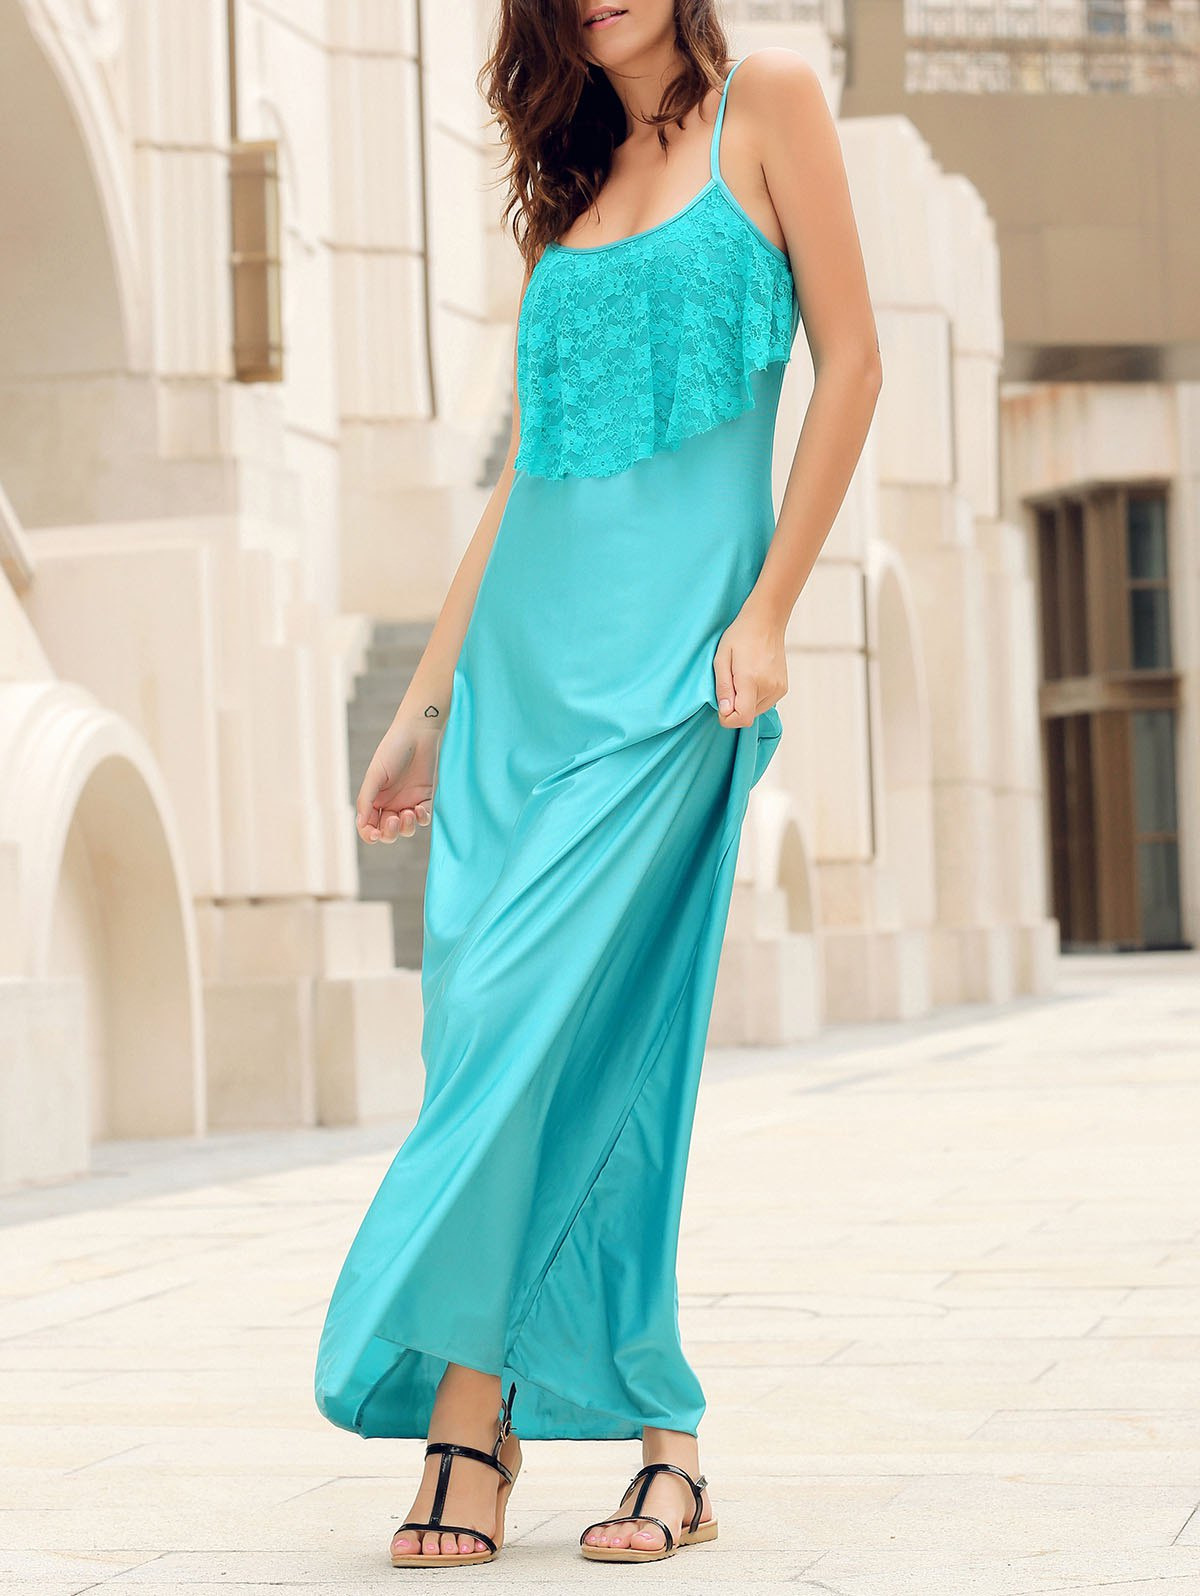 Fashion Long Slip Lace Trim Backless Floor Length Dress